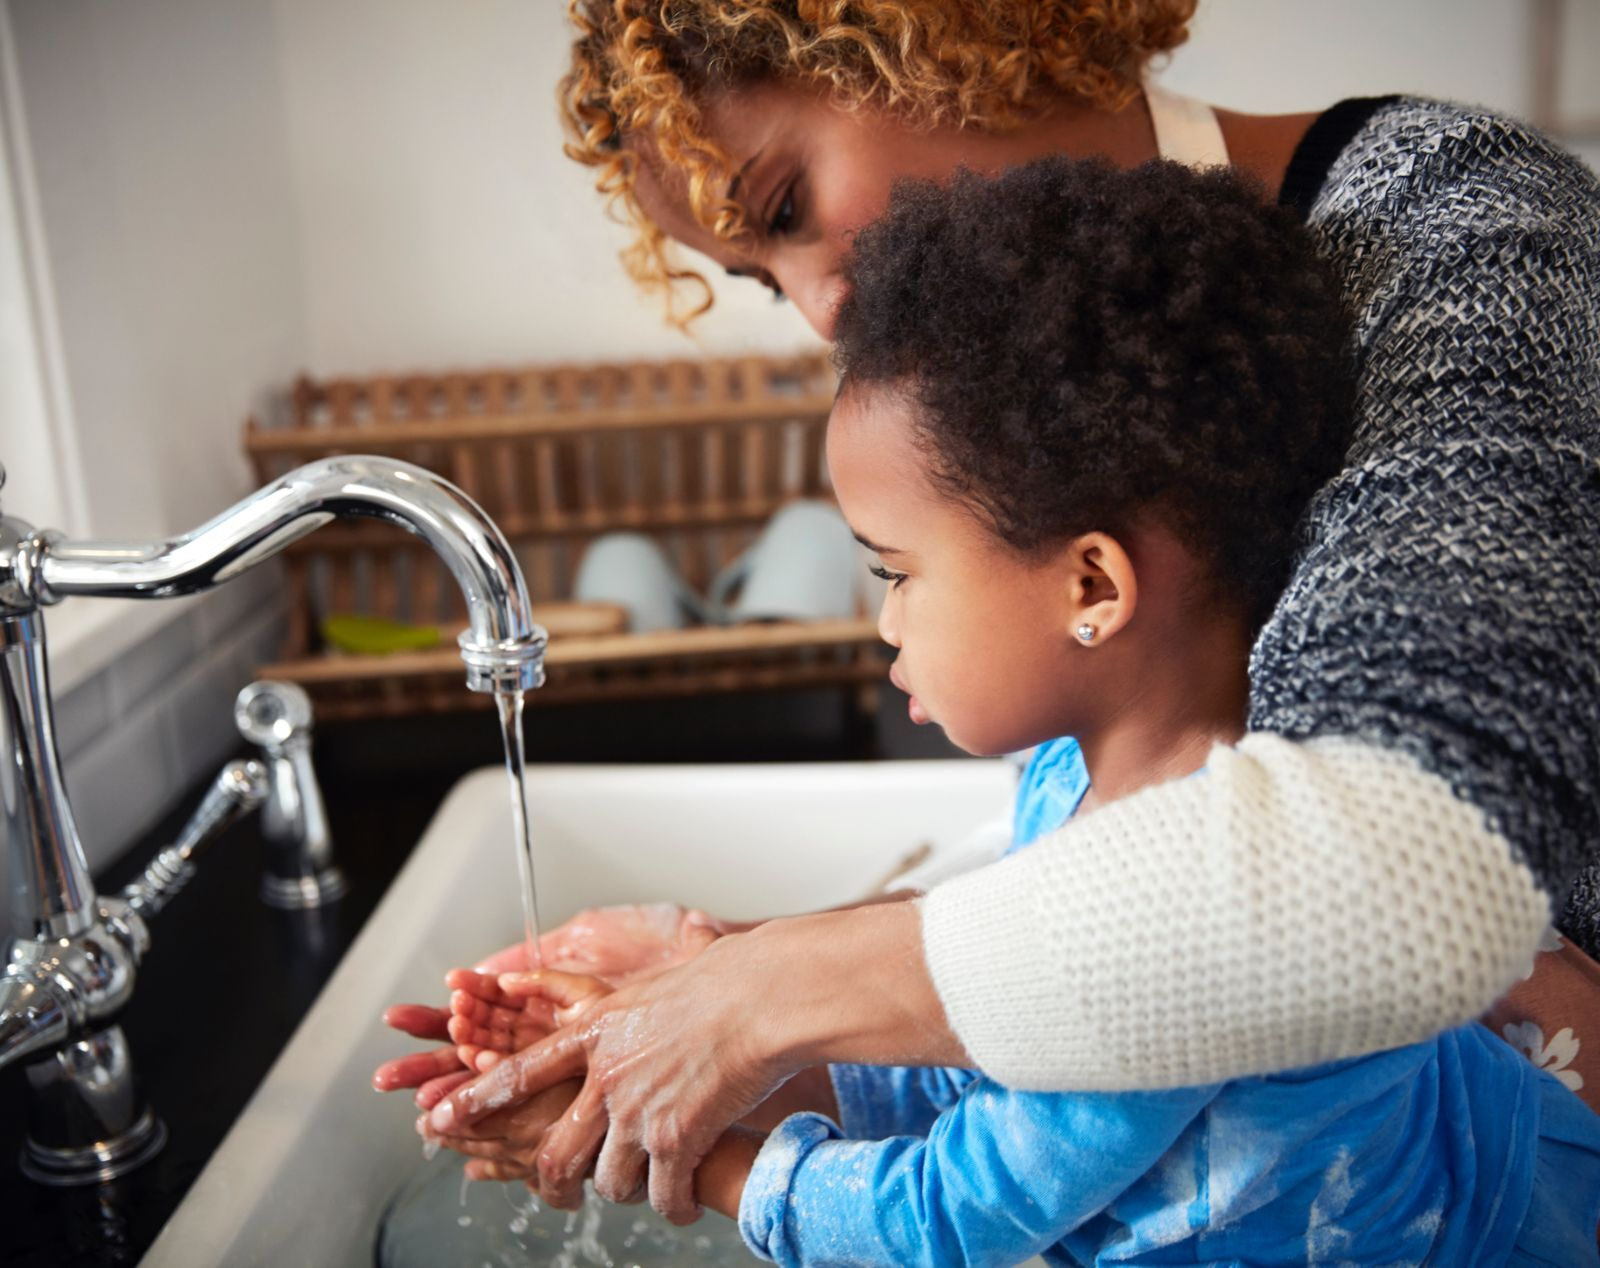 mother helping small child in blue shirt wash his hands at kitchen sink